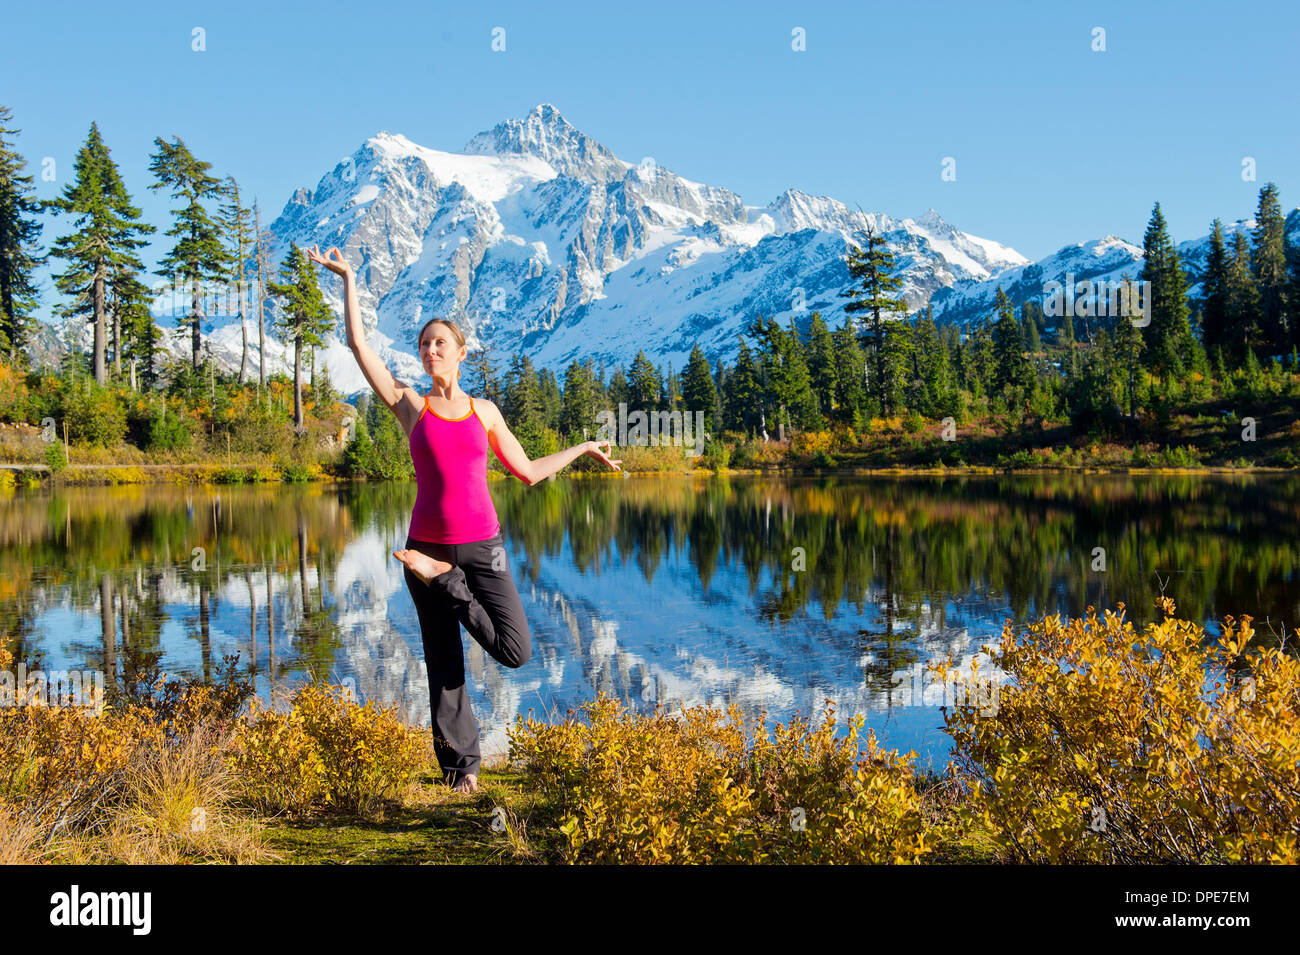 Woman doing yoga in mountain scene, Bellingham, Washington, USA - Stock Image